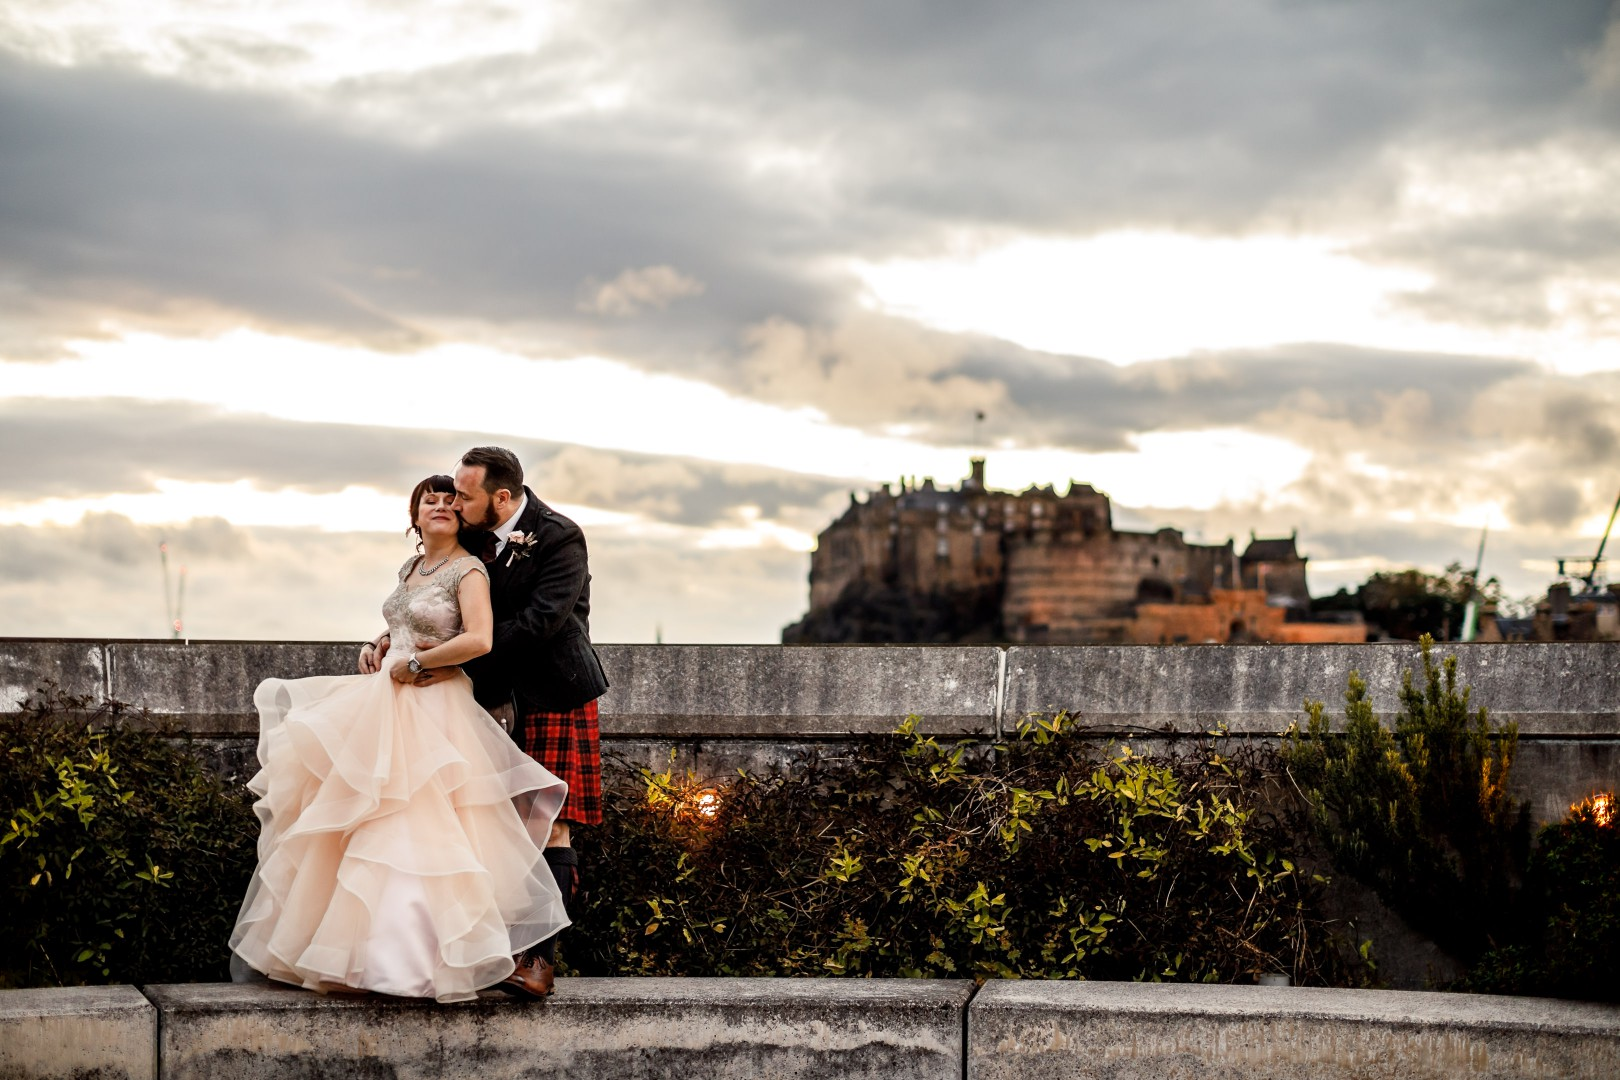 Unique Wedding Venues- Unconventional Wedding- Lina & Tom Photography- castle wedding